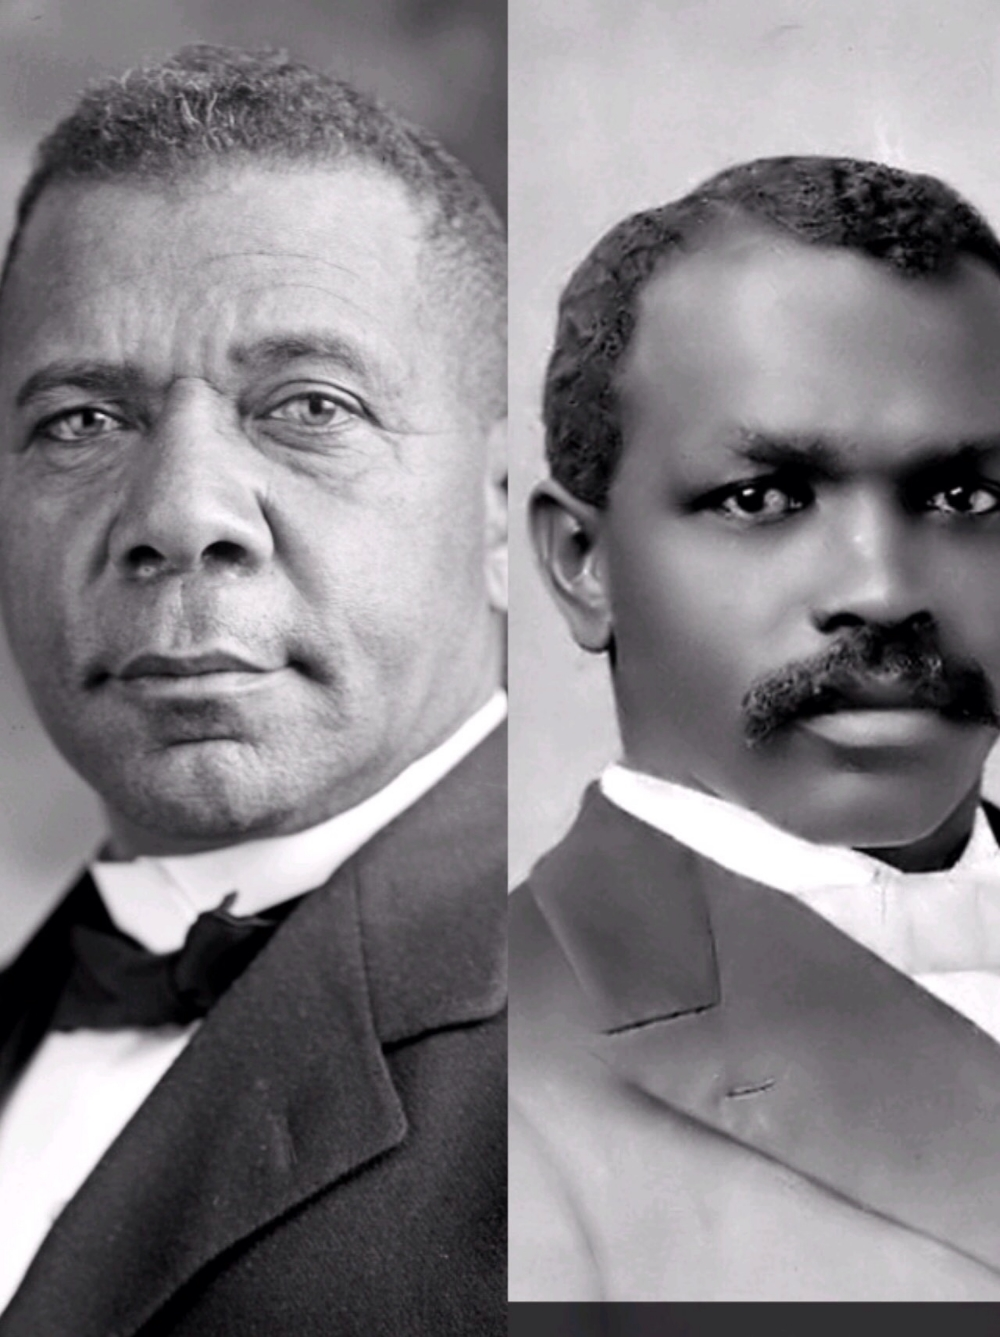 booker t. washington (left) and jwe bowne (right) both delivered speeches at the cotton states exposition, piedmont park, atlanta, georgia